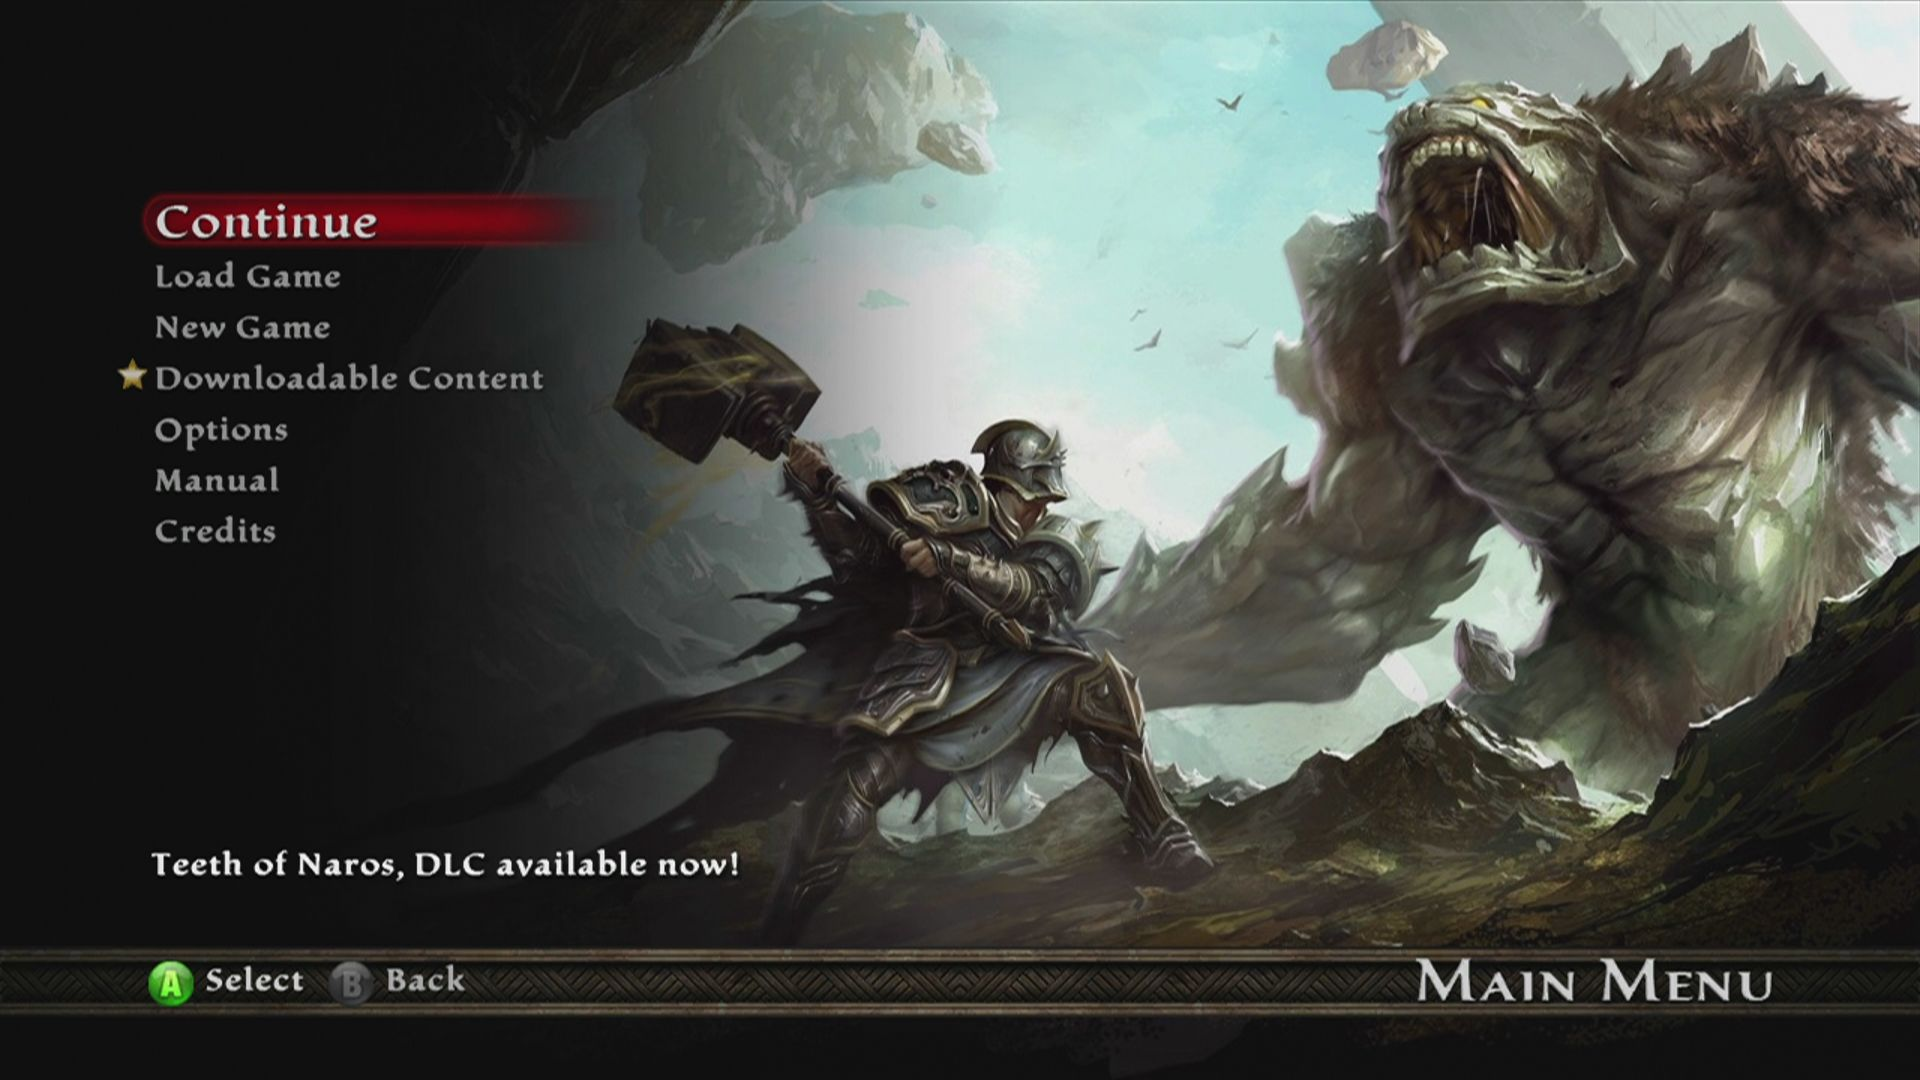 Kingdoms of Amalur: Reckoning Xbox 360 Game menu